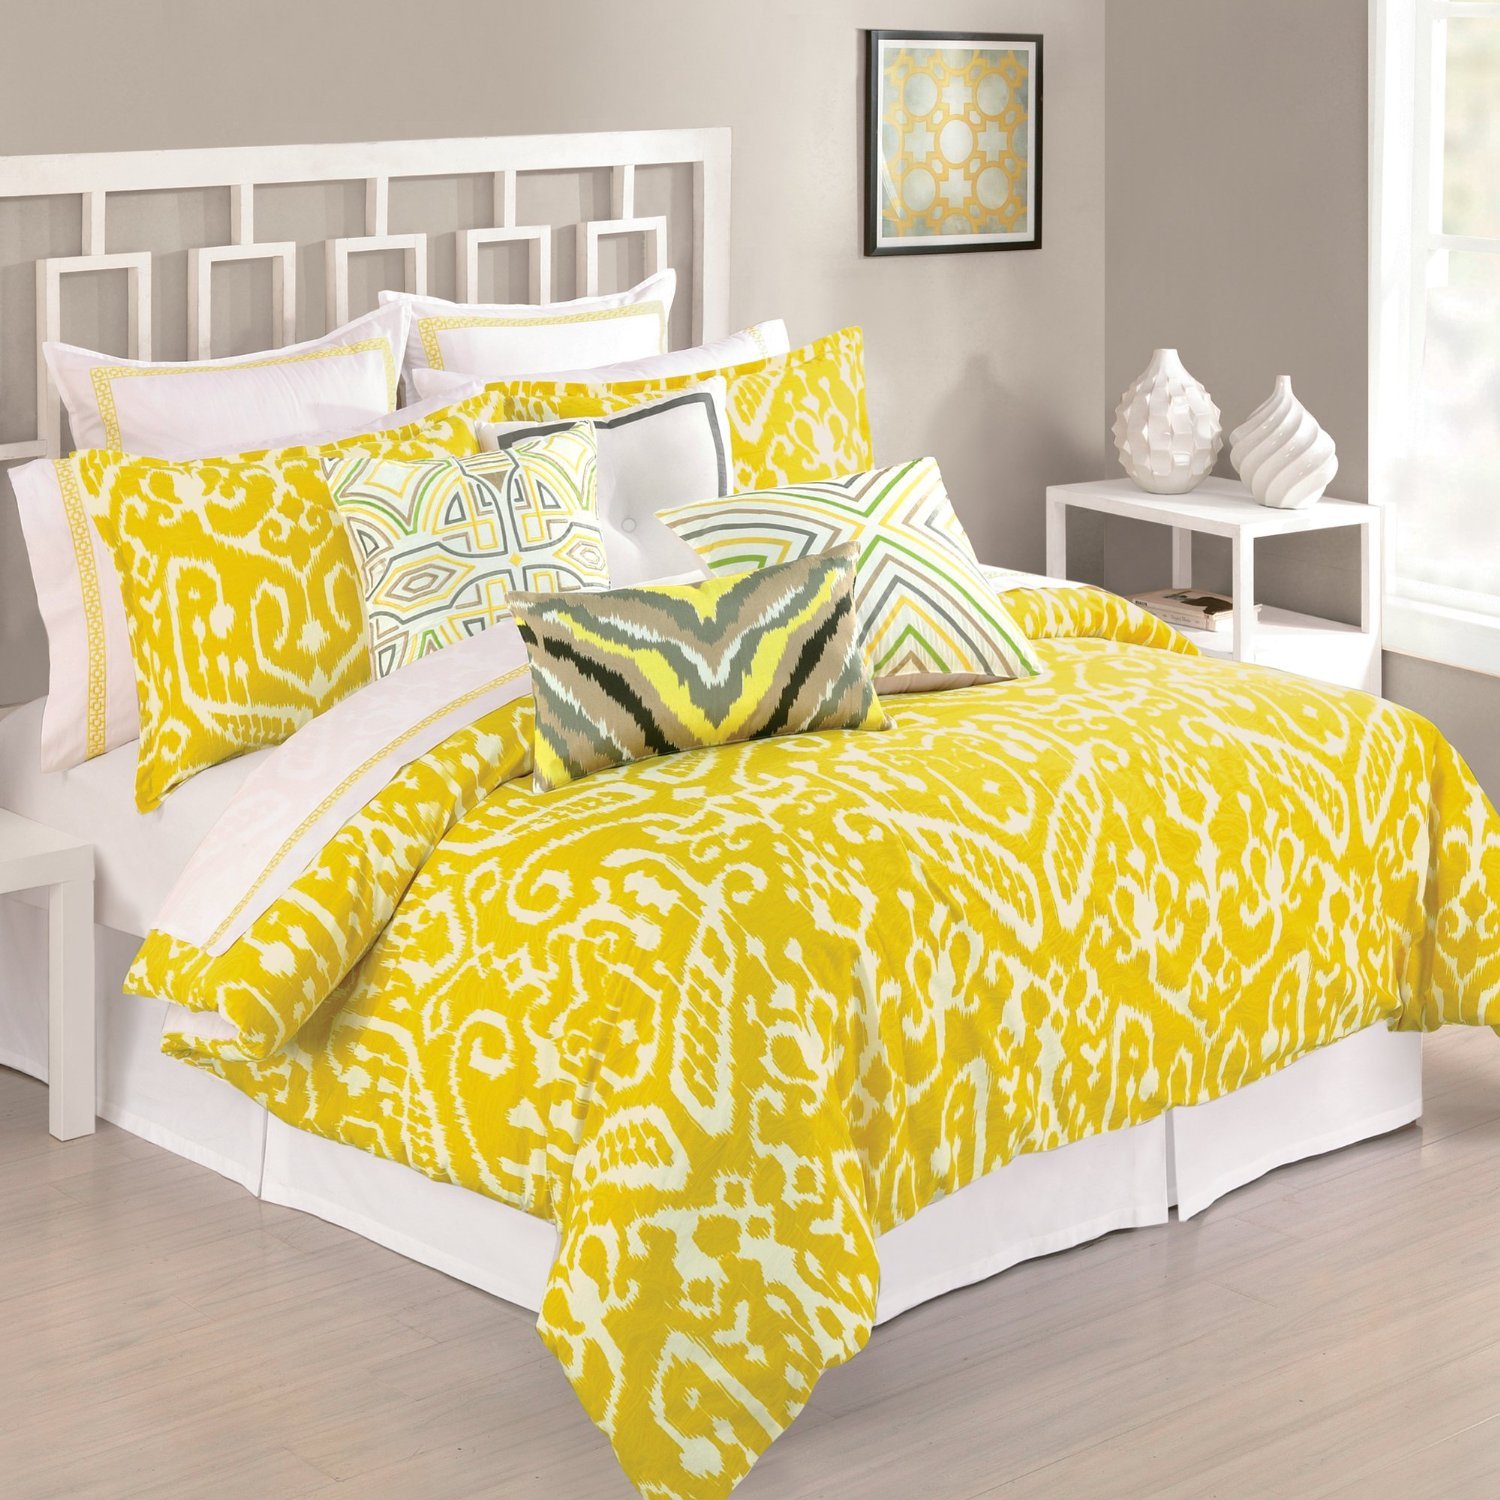 Finest Mustard Yellow Comforters and Bedding Sets LW38